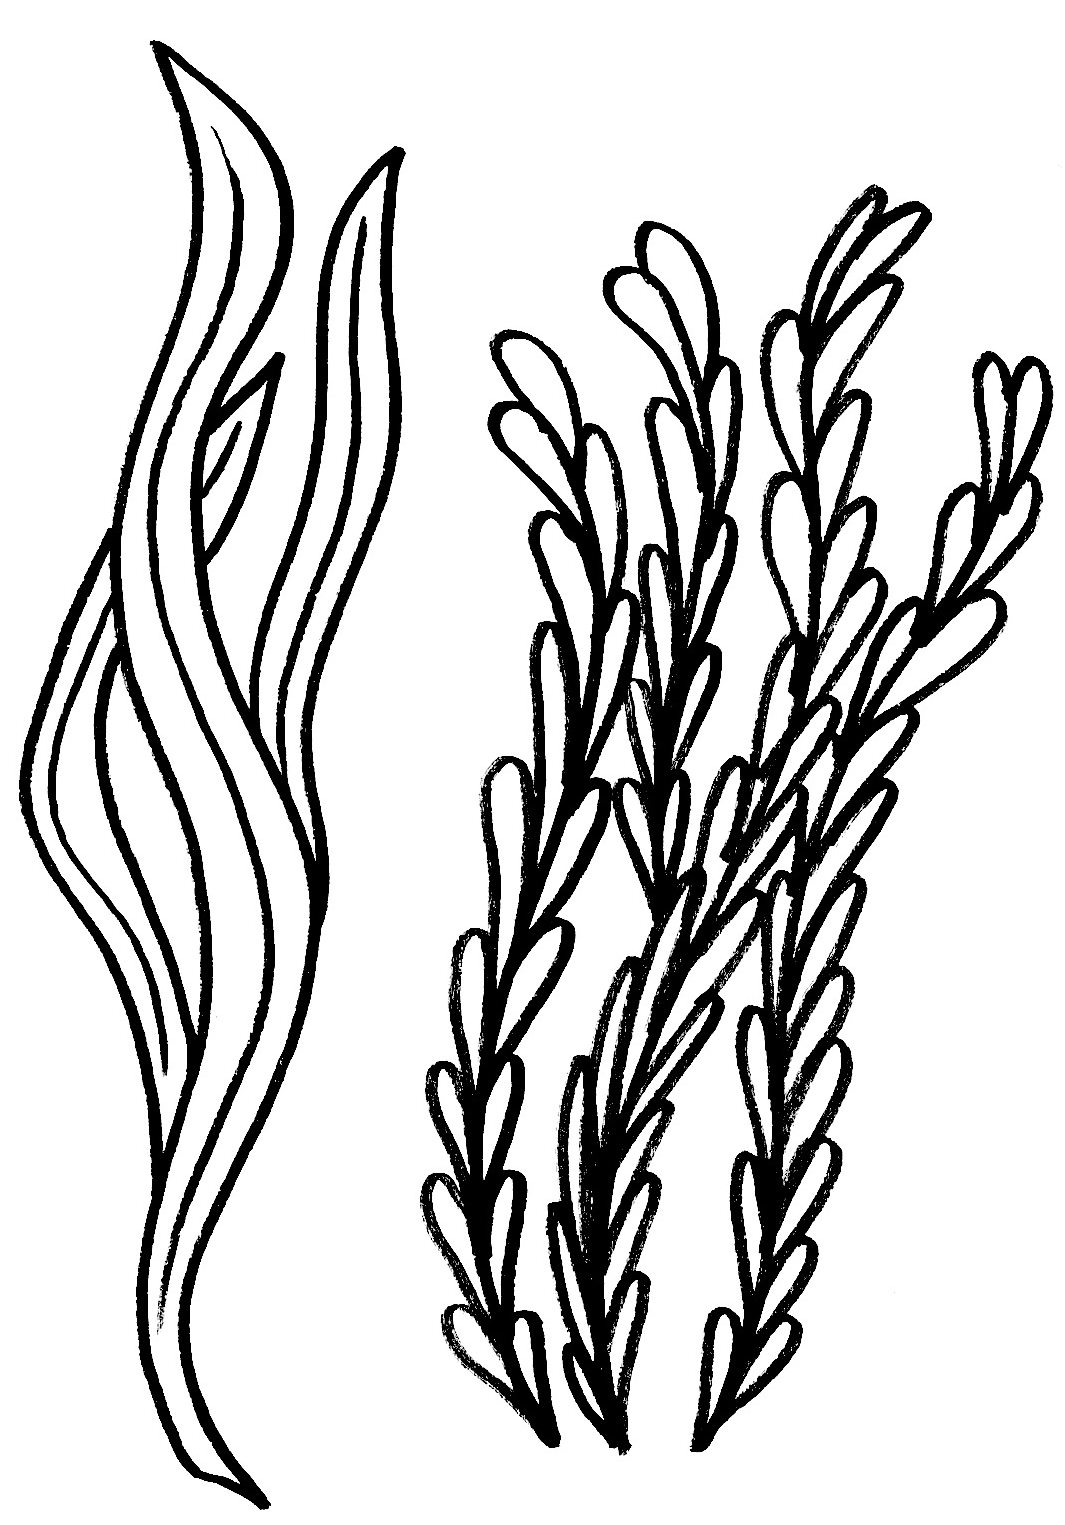 waterplantssketch.png